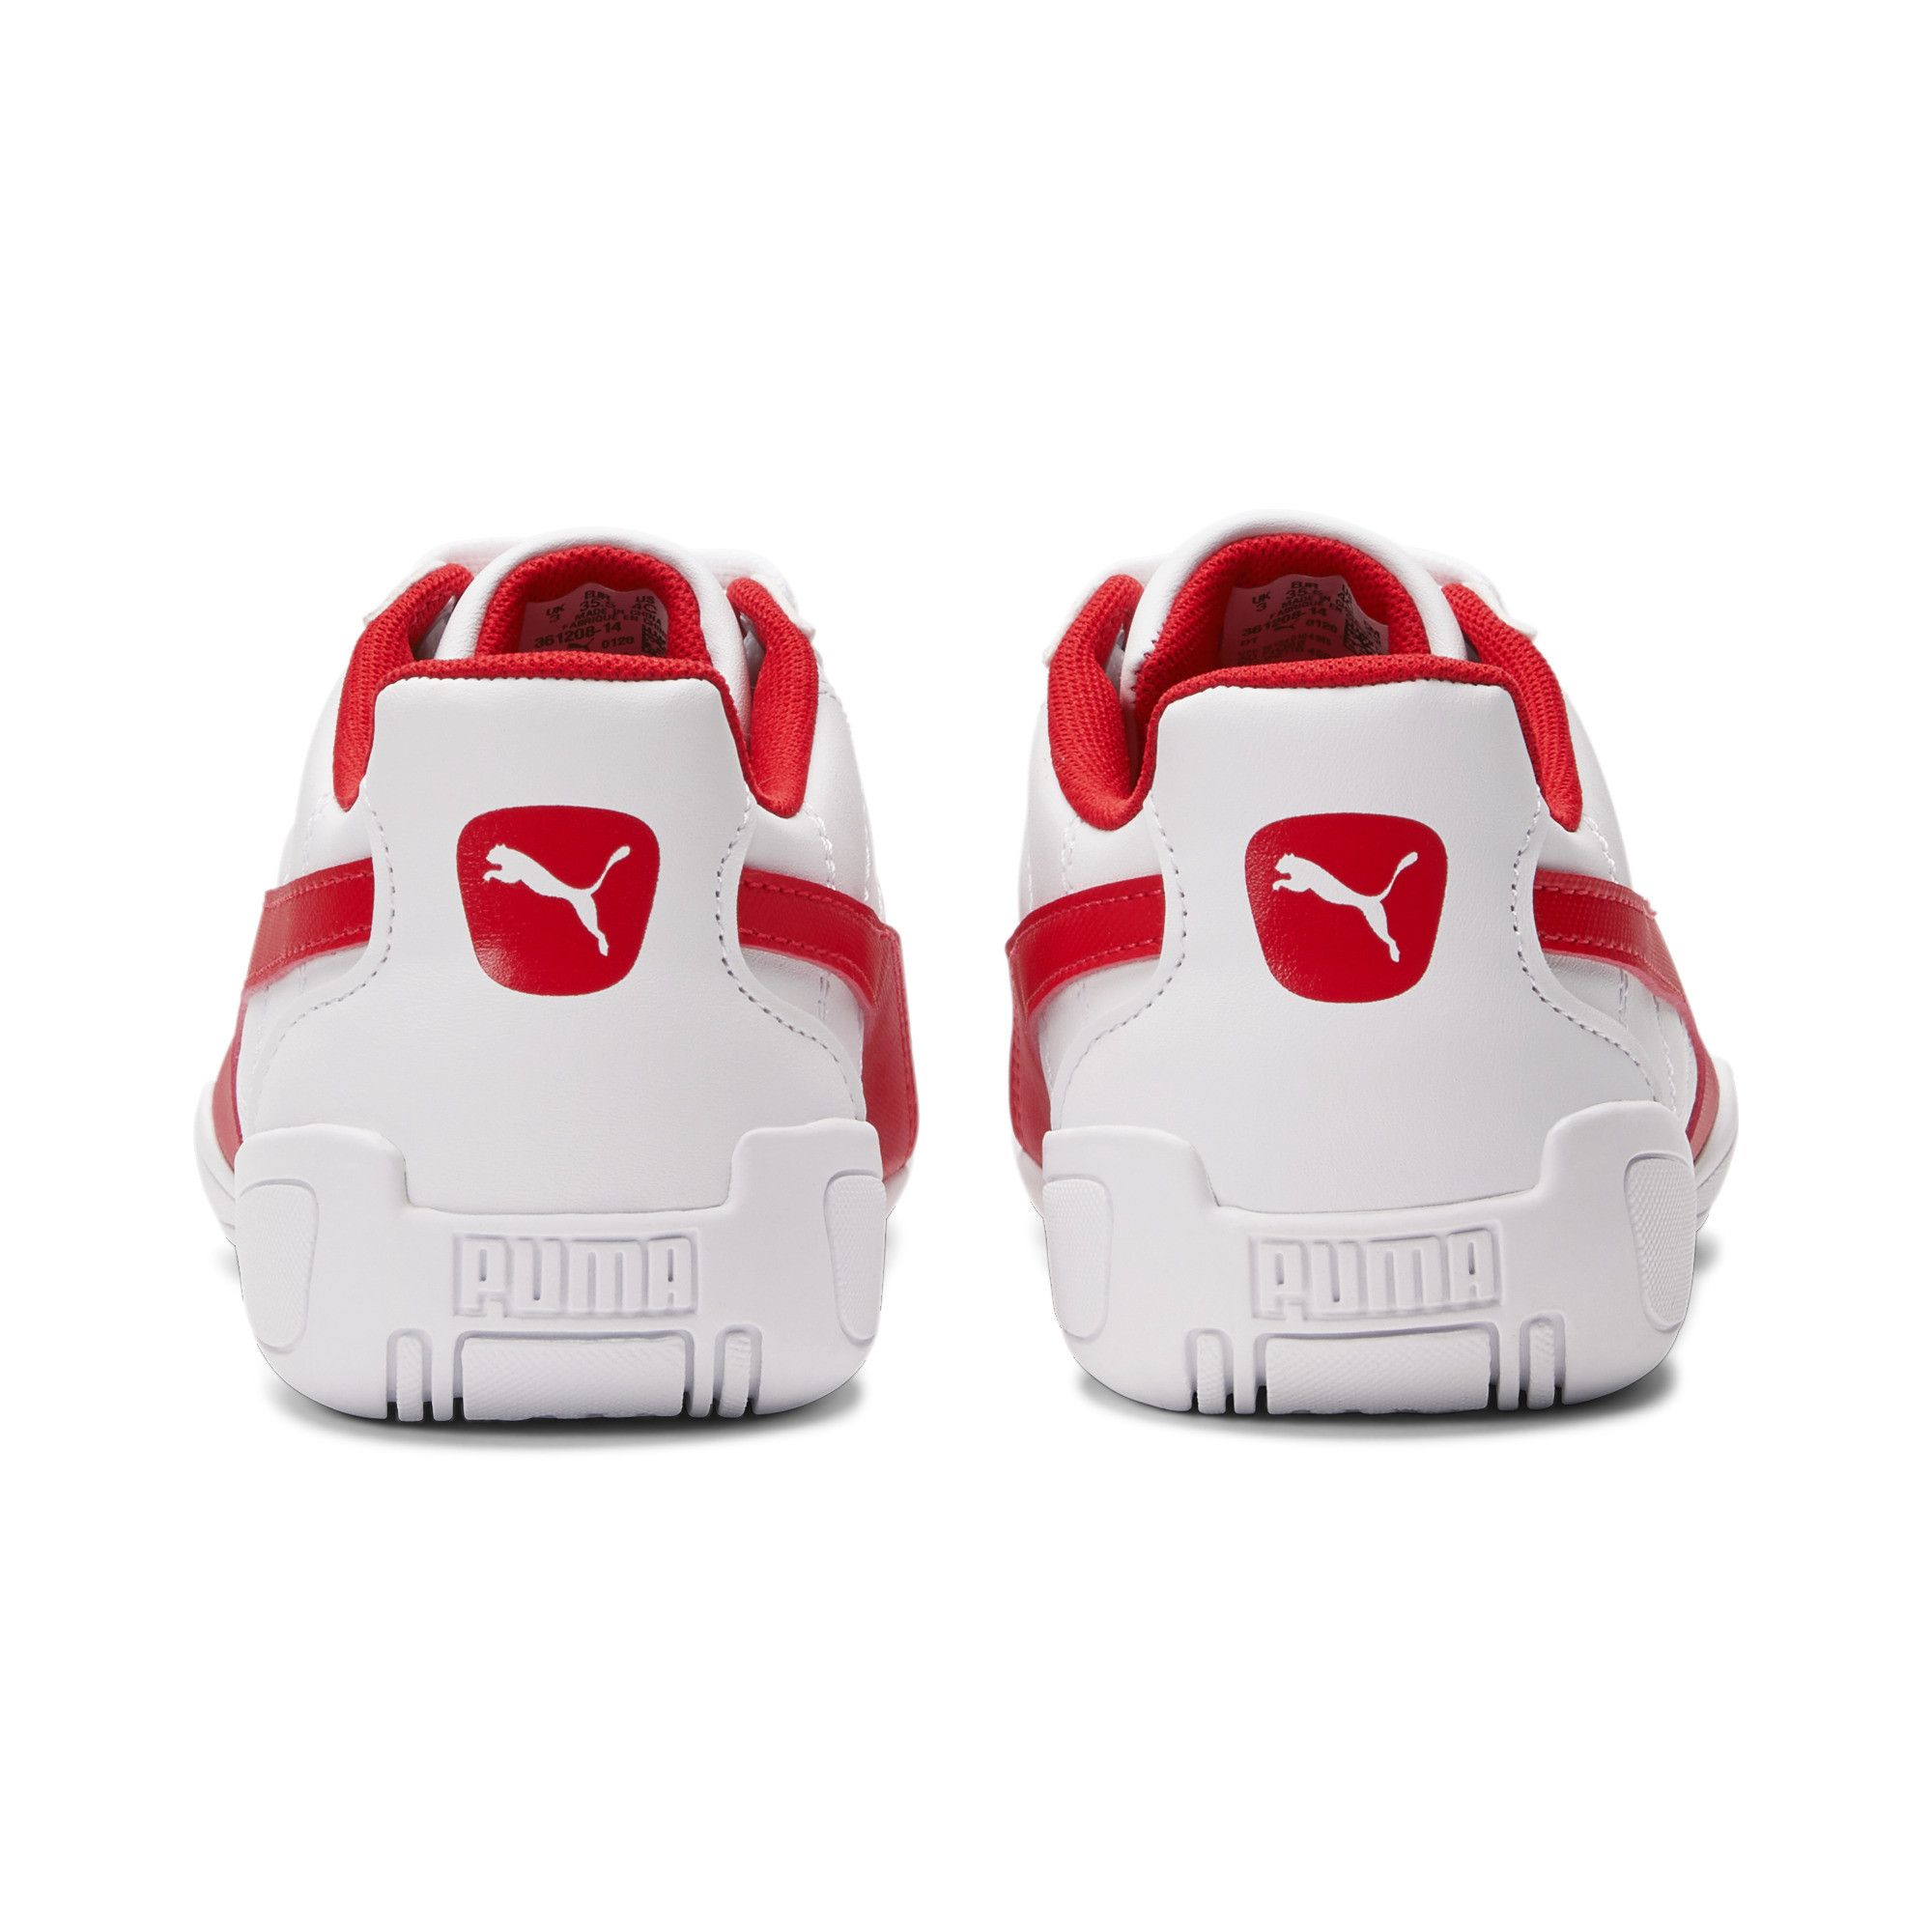 PUMA-Tune-Cat-3-Shoes-JR-Kids-Shoe-Kids thumbnail 3